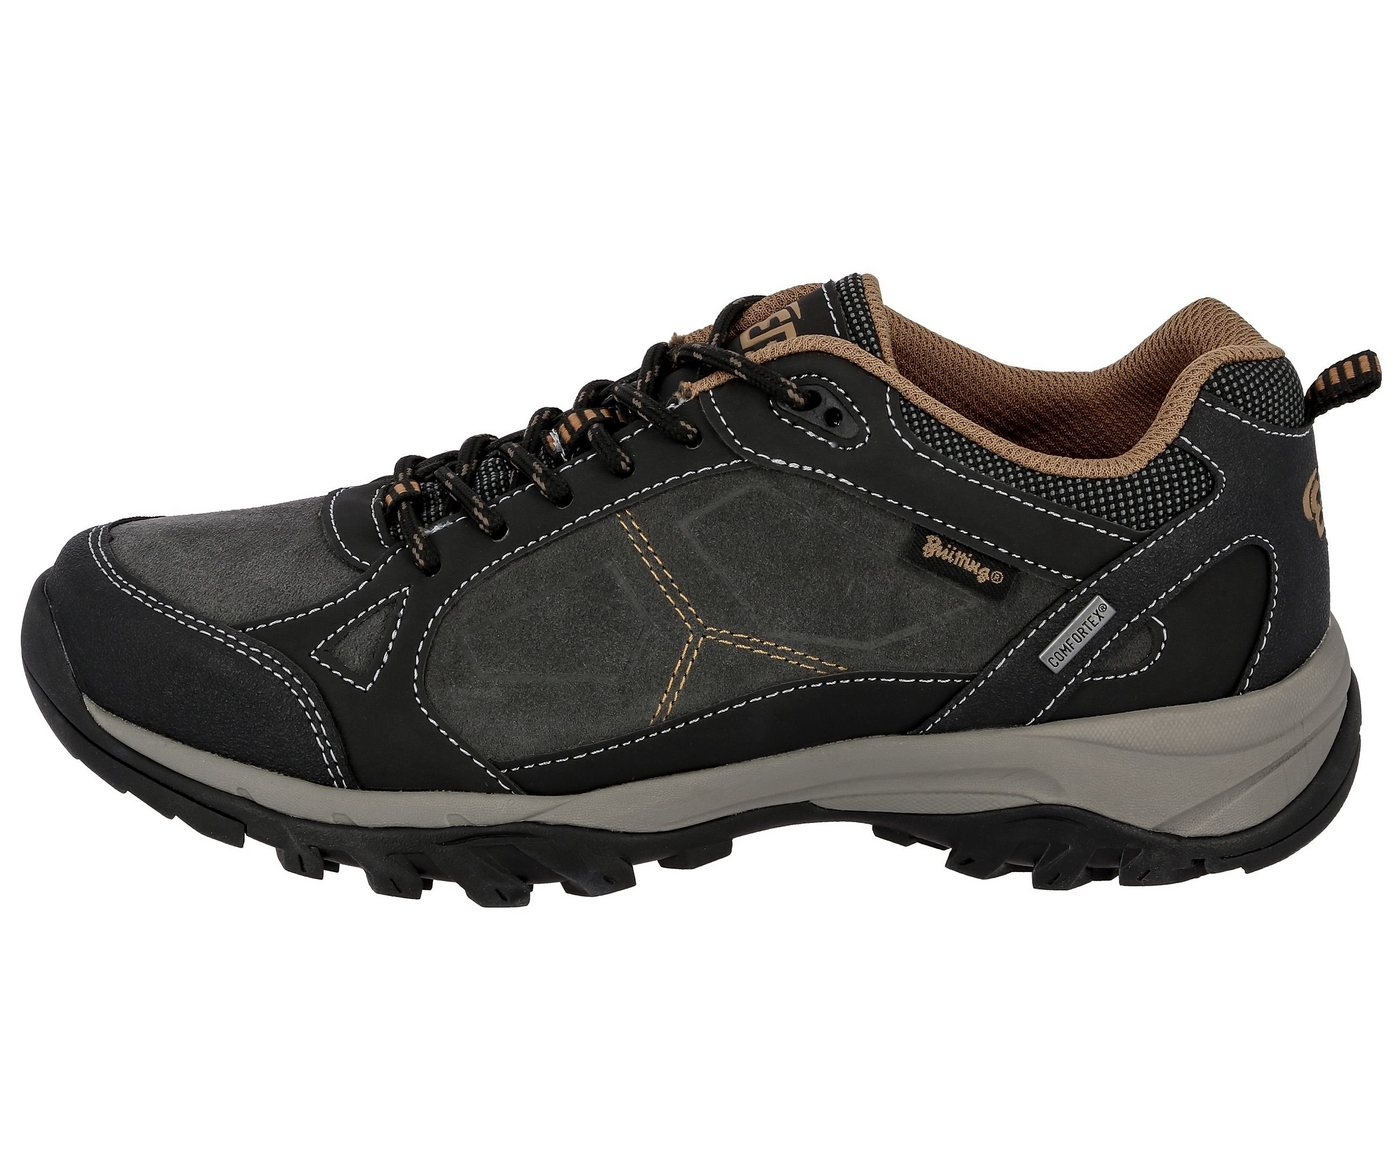 BRÜTTING »Outdoorschuh Akron« Outdoorschuh von BRÜTTING